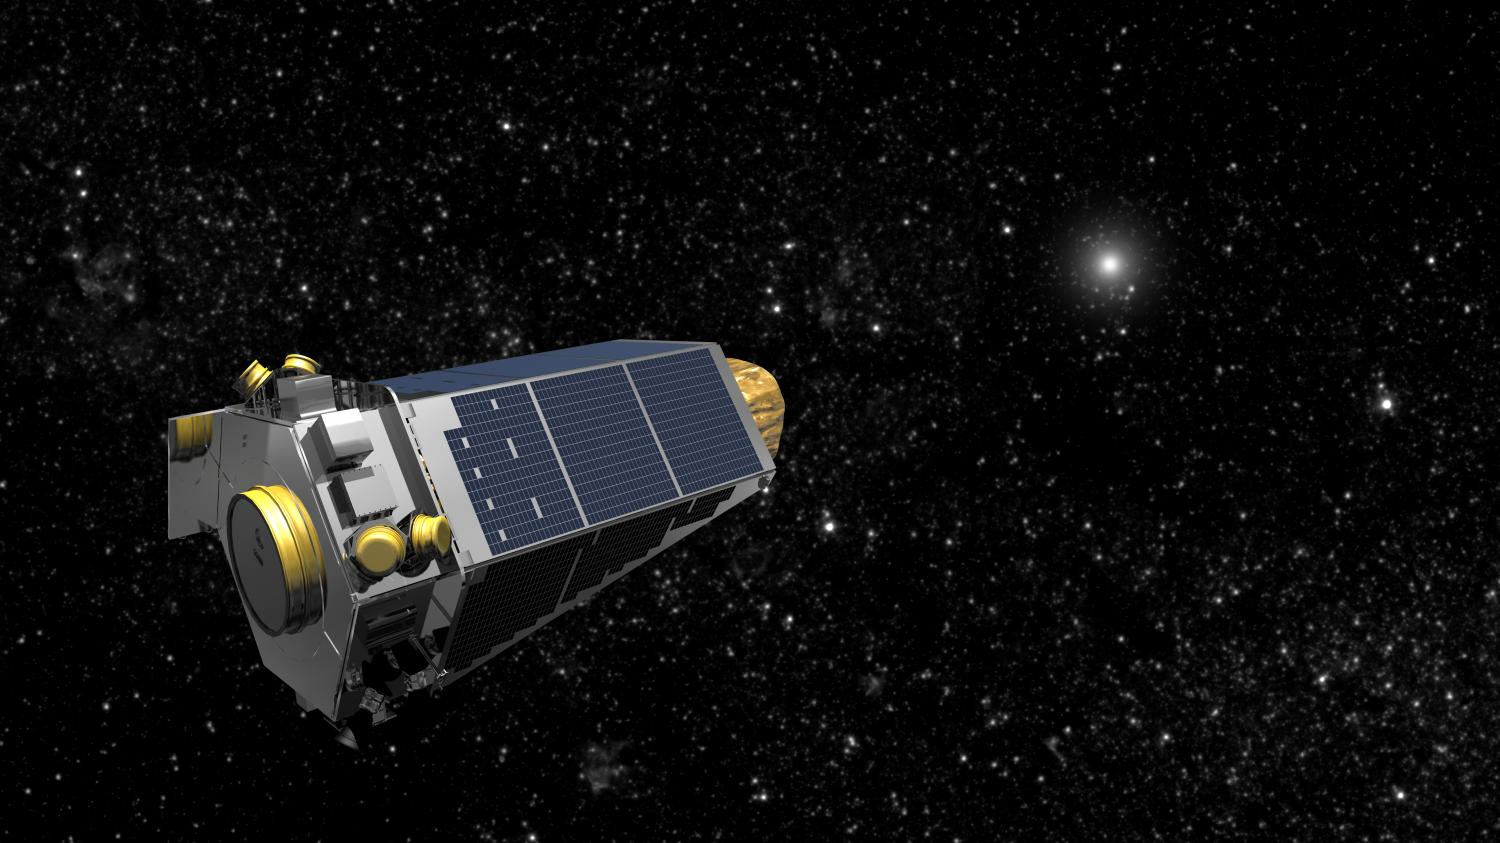 The space telescope Kepler will only work for a few months